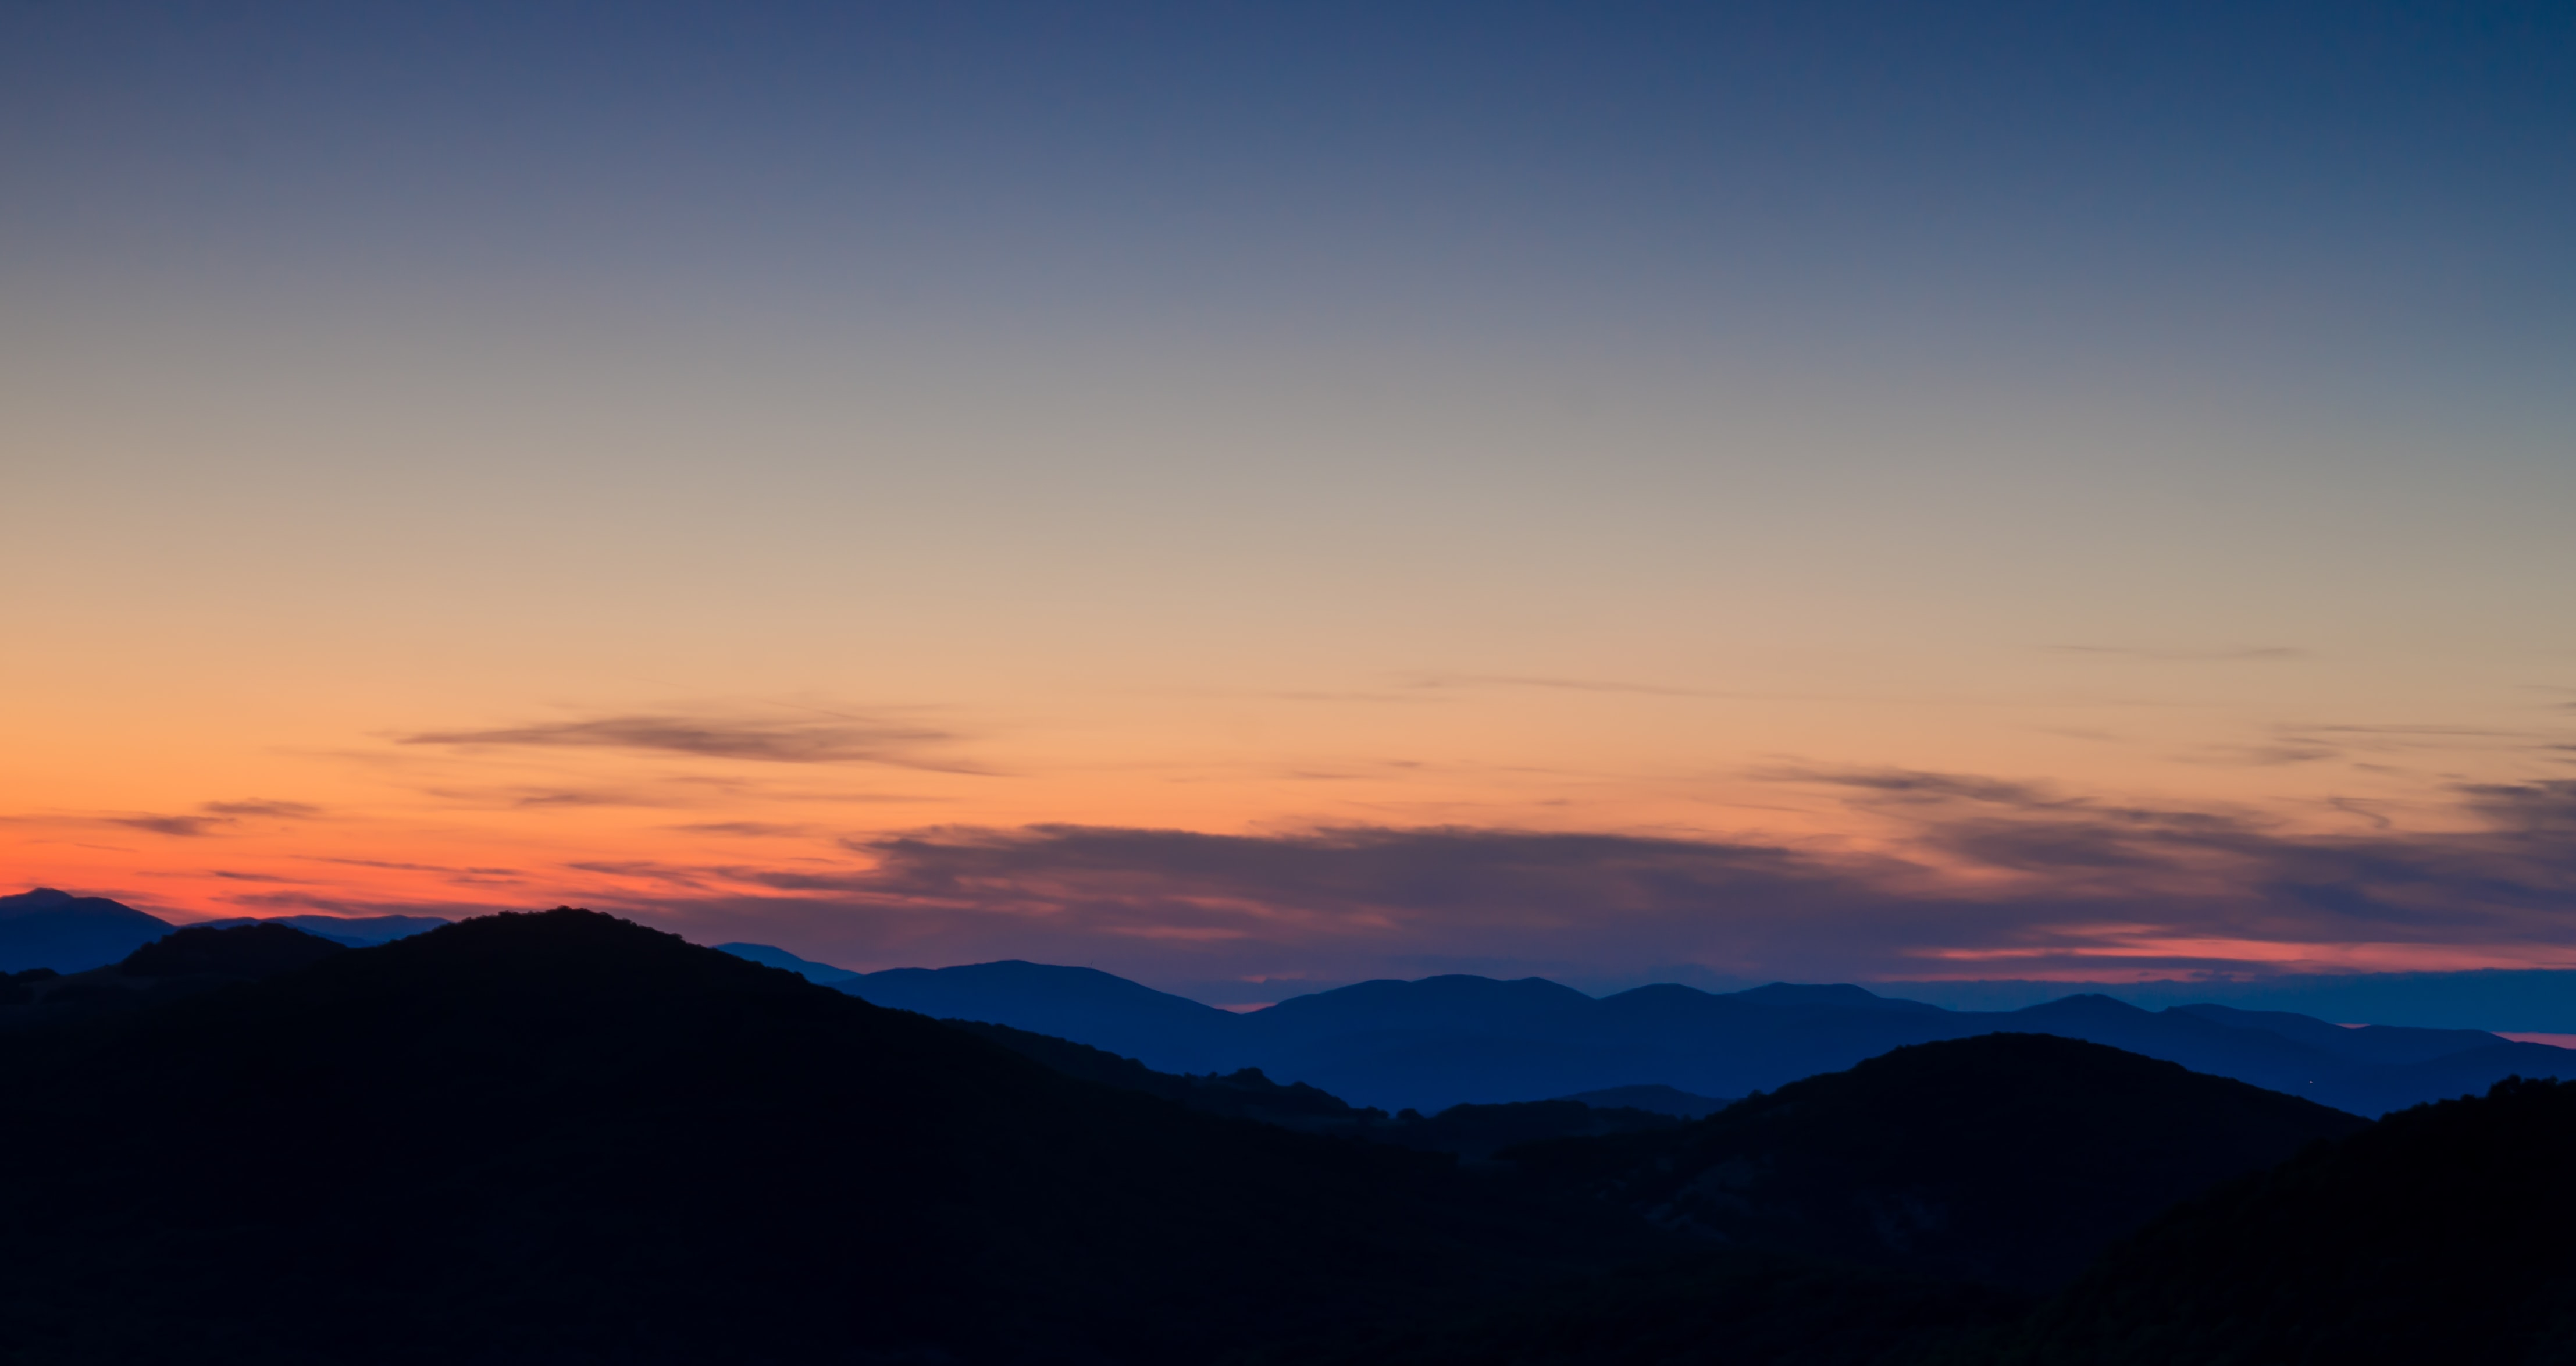 silhouette of mountain cliffs